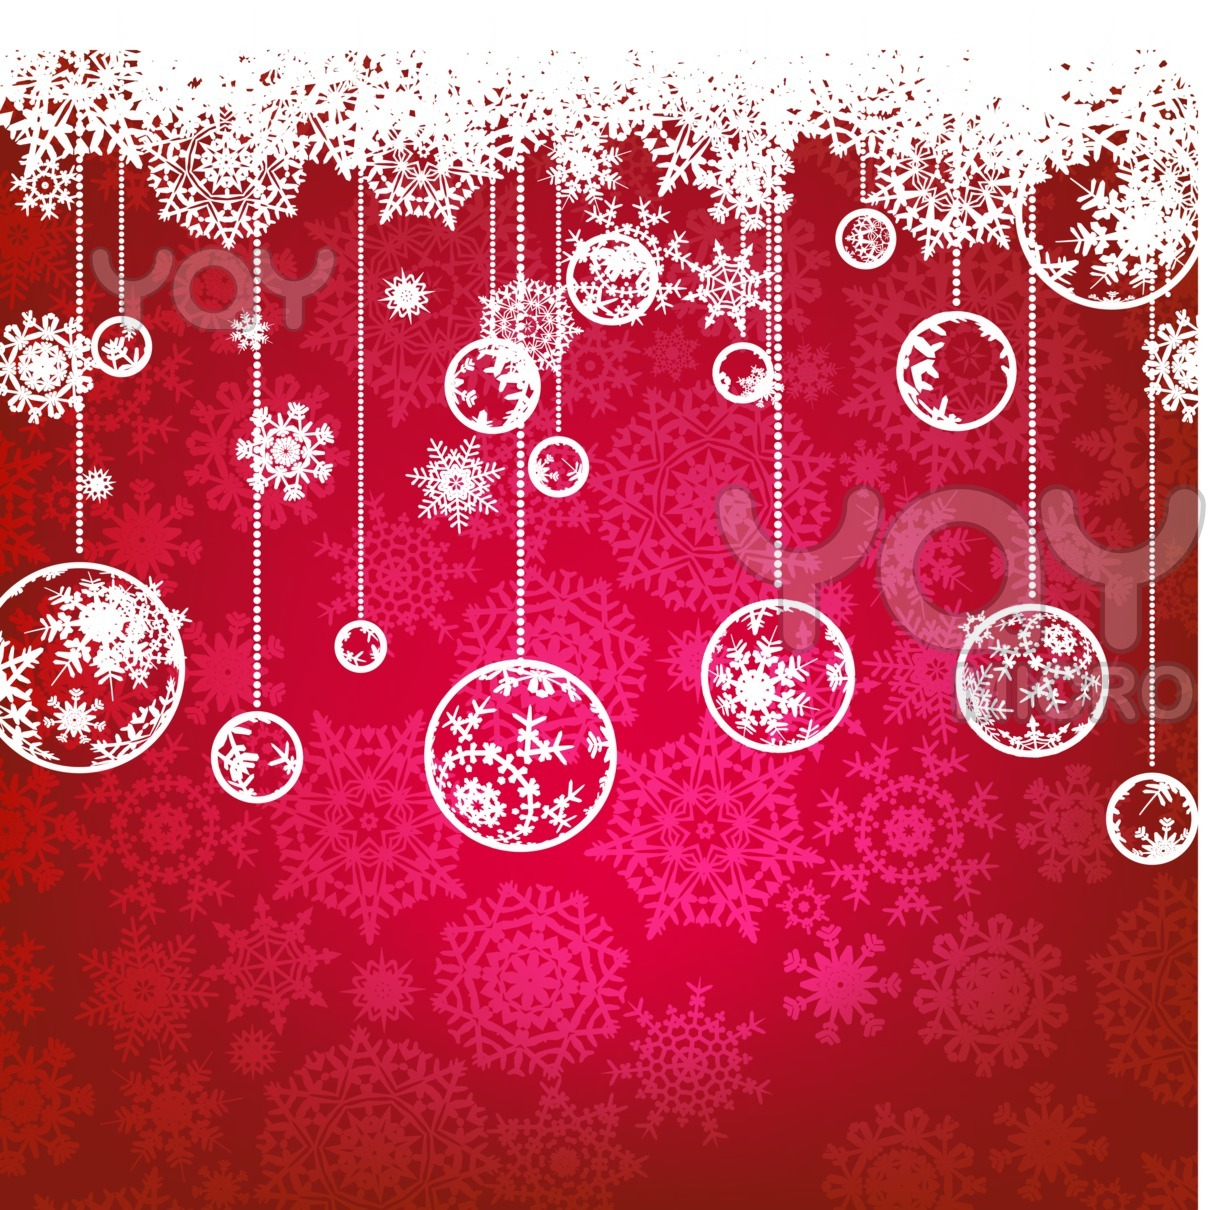 full resolution 1210 1210 - Holiday Christmas Cards